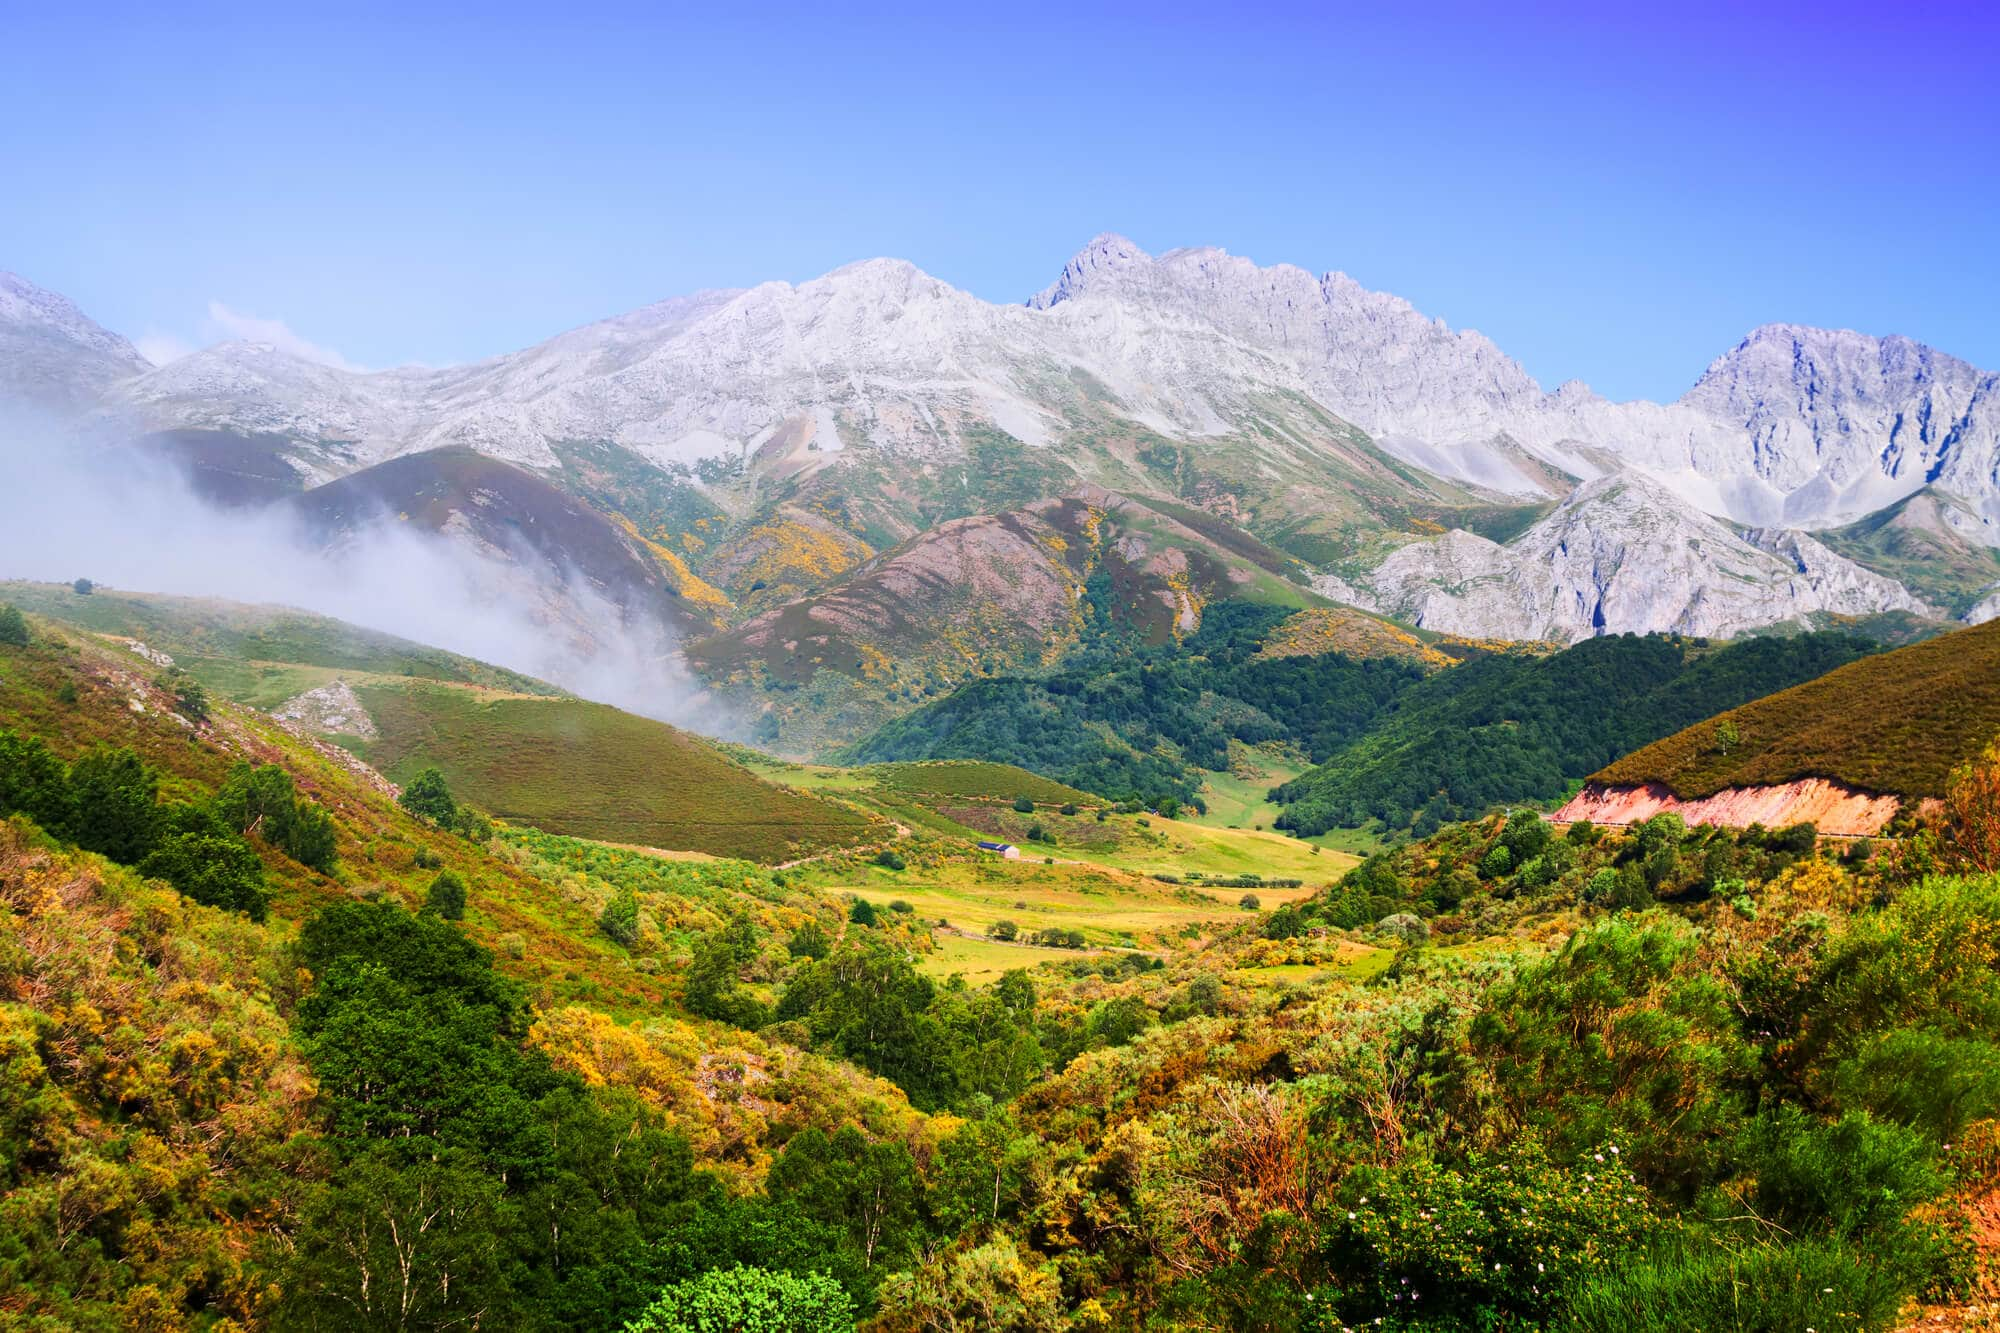 Babia - One of the most beautiful natural parks and a hidden gem in Spain